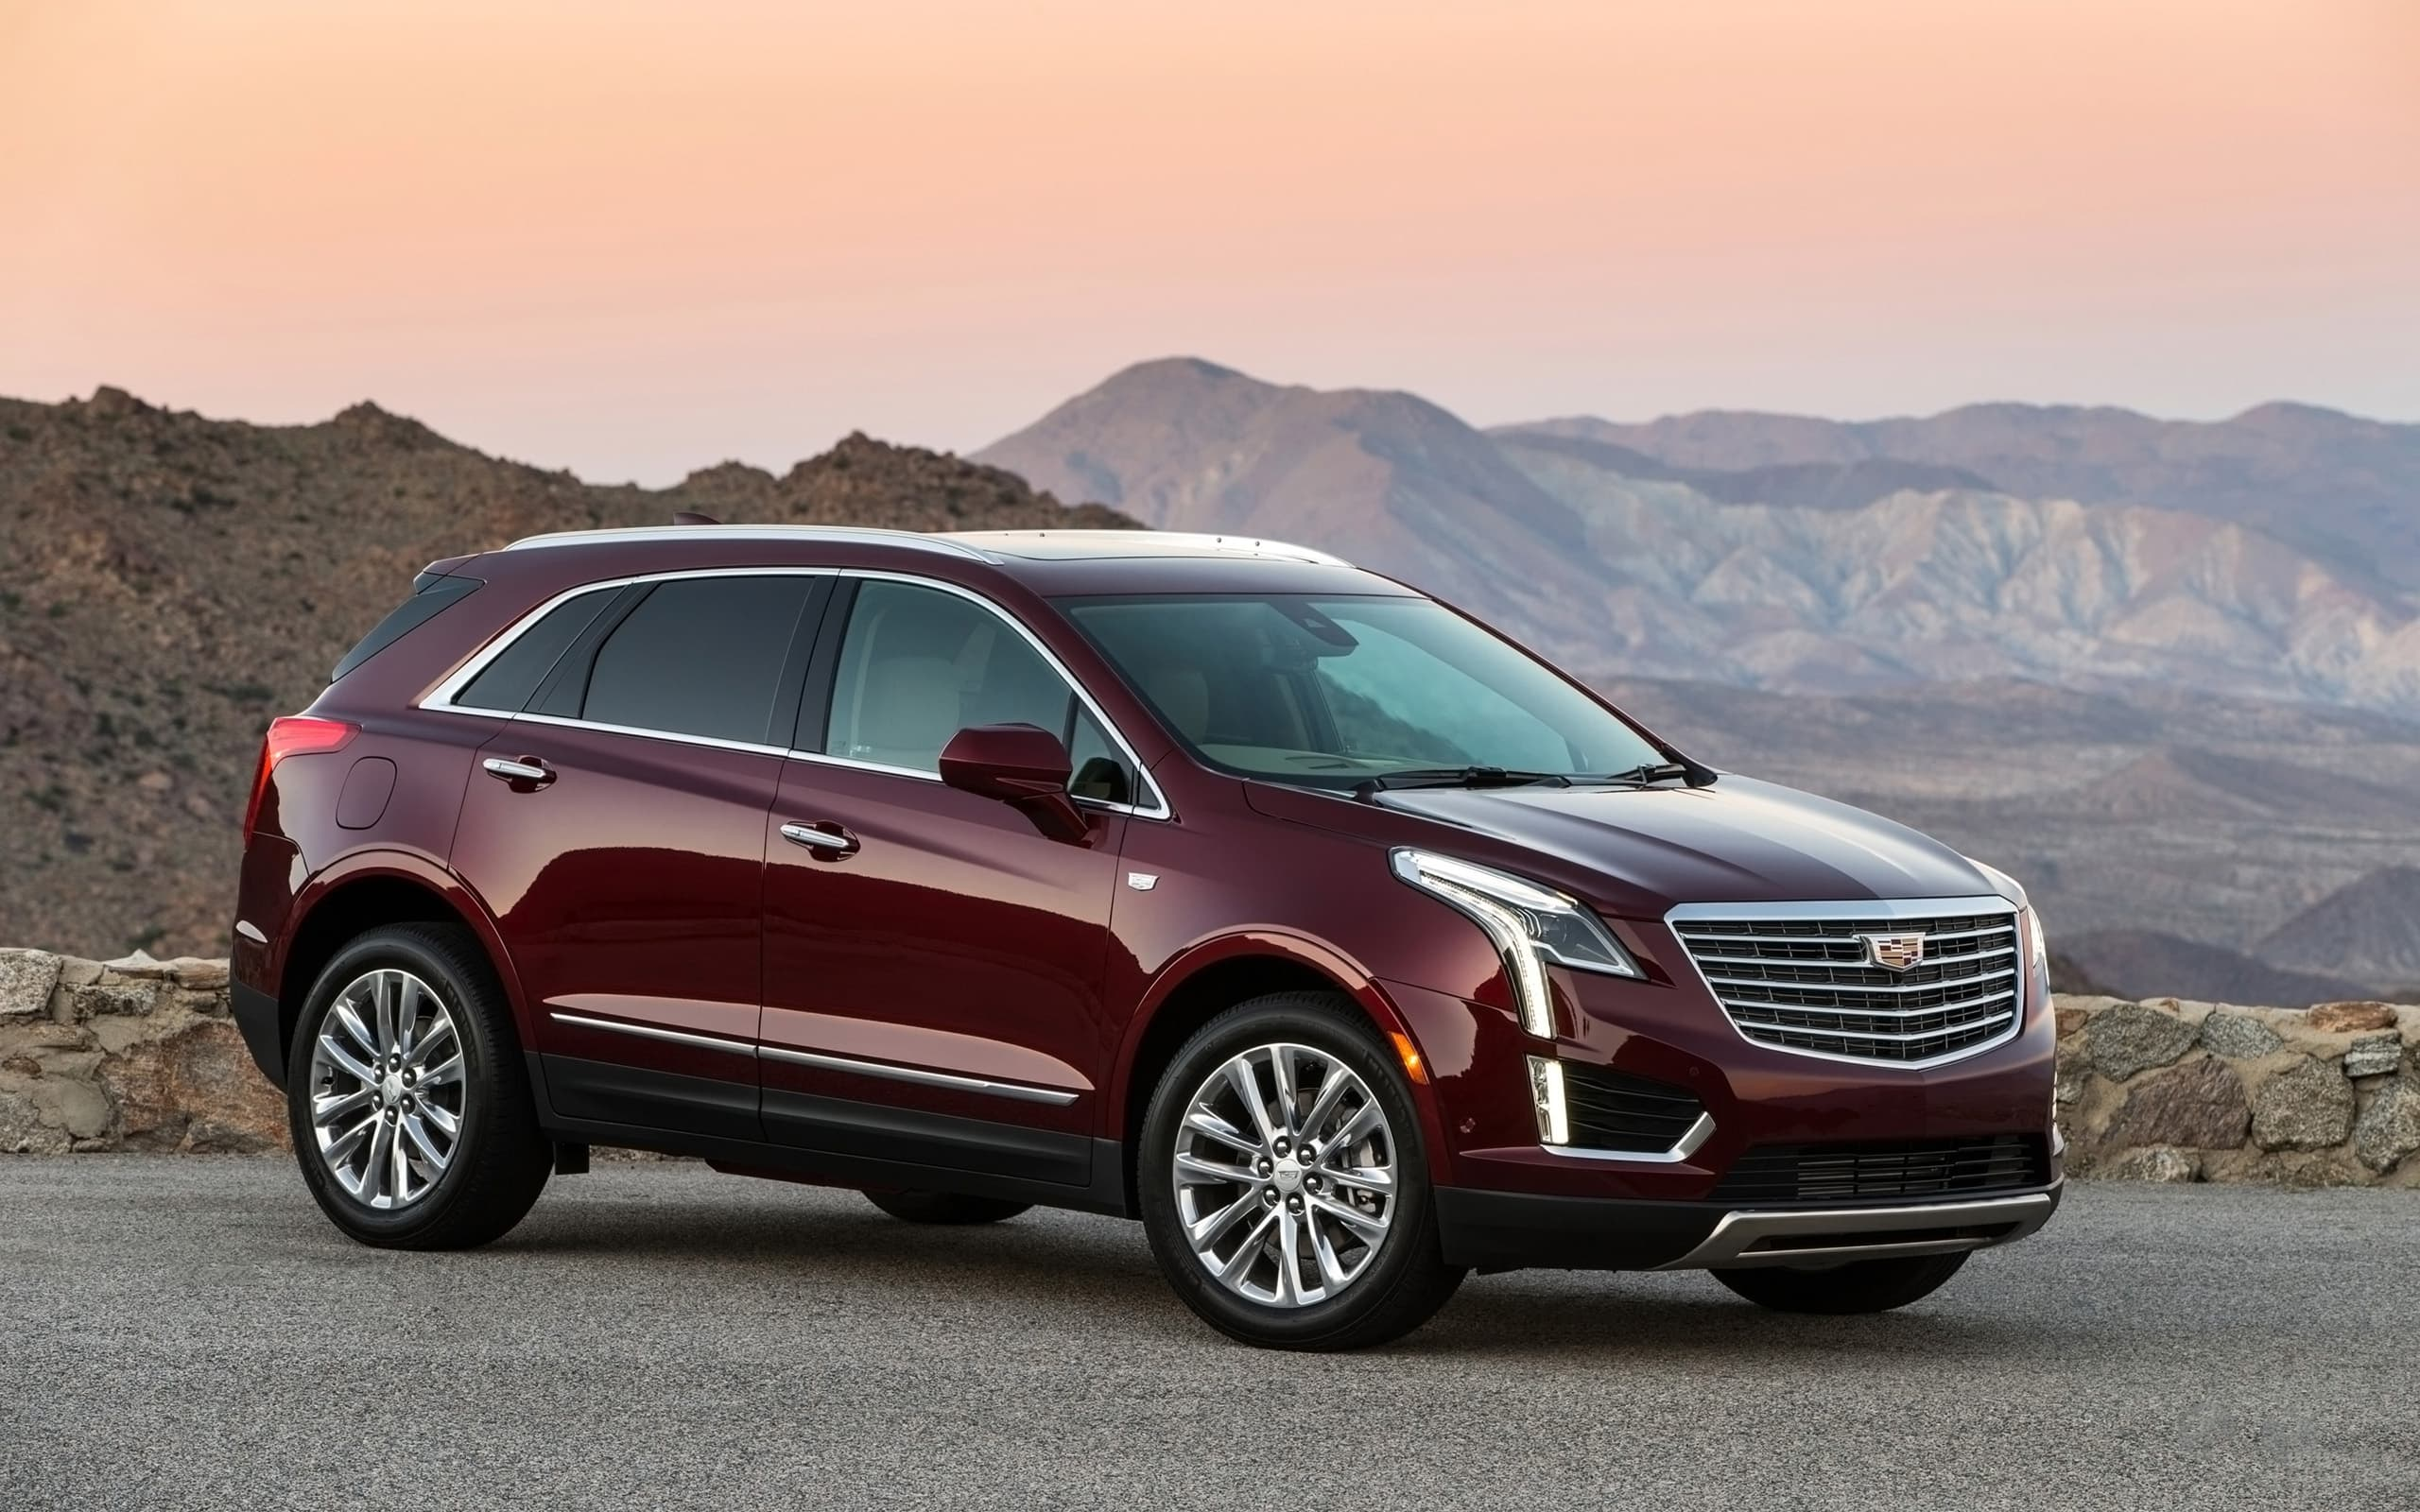 2017 cadillac xt5 wallpapers hd suv black red white silver. Black Bedroom Furniture Sets. Home Design Ideas